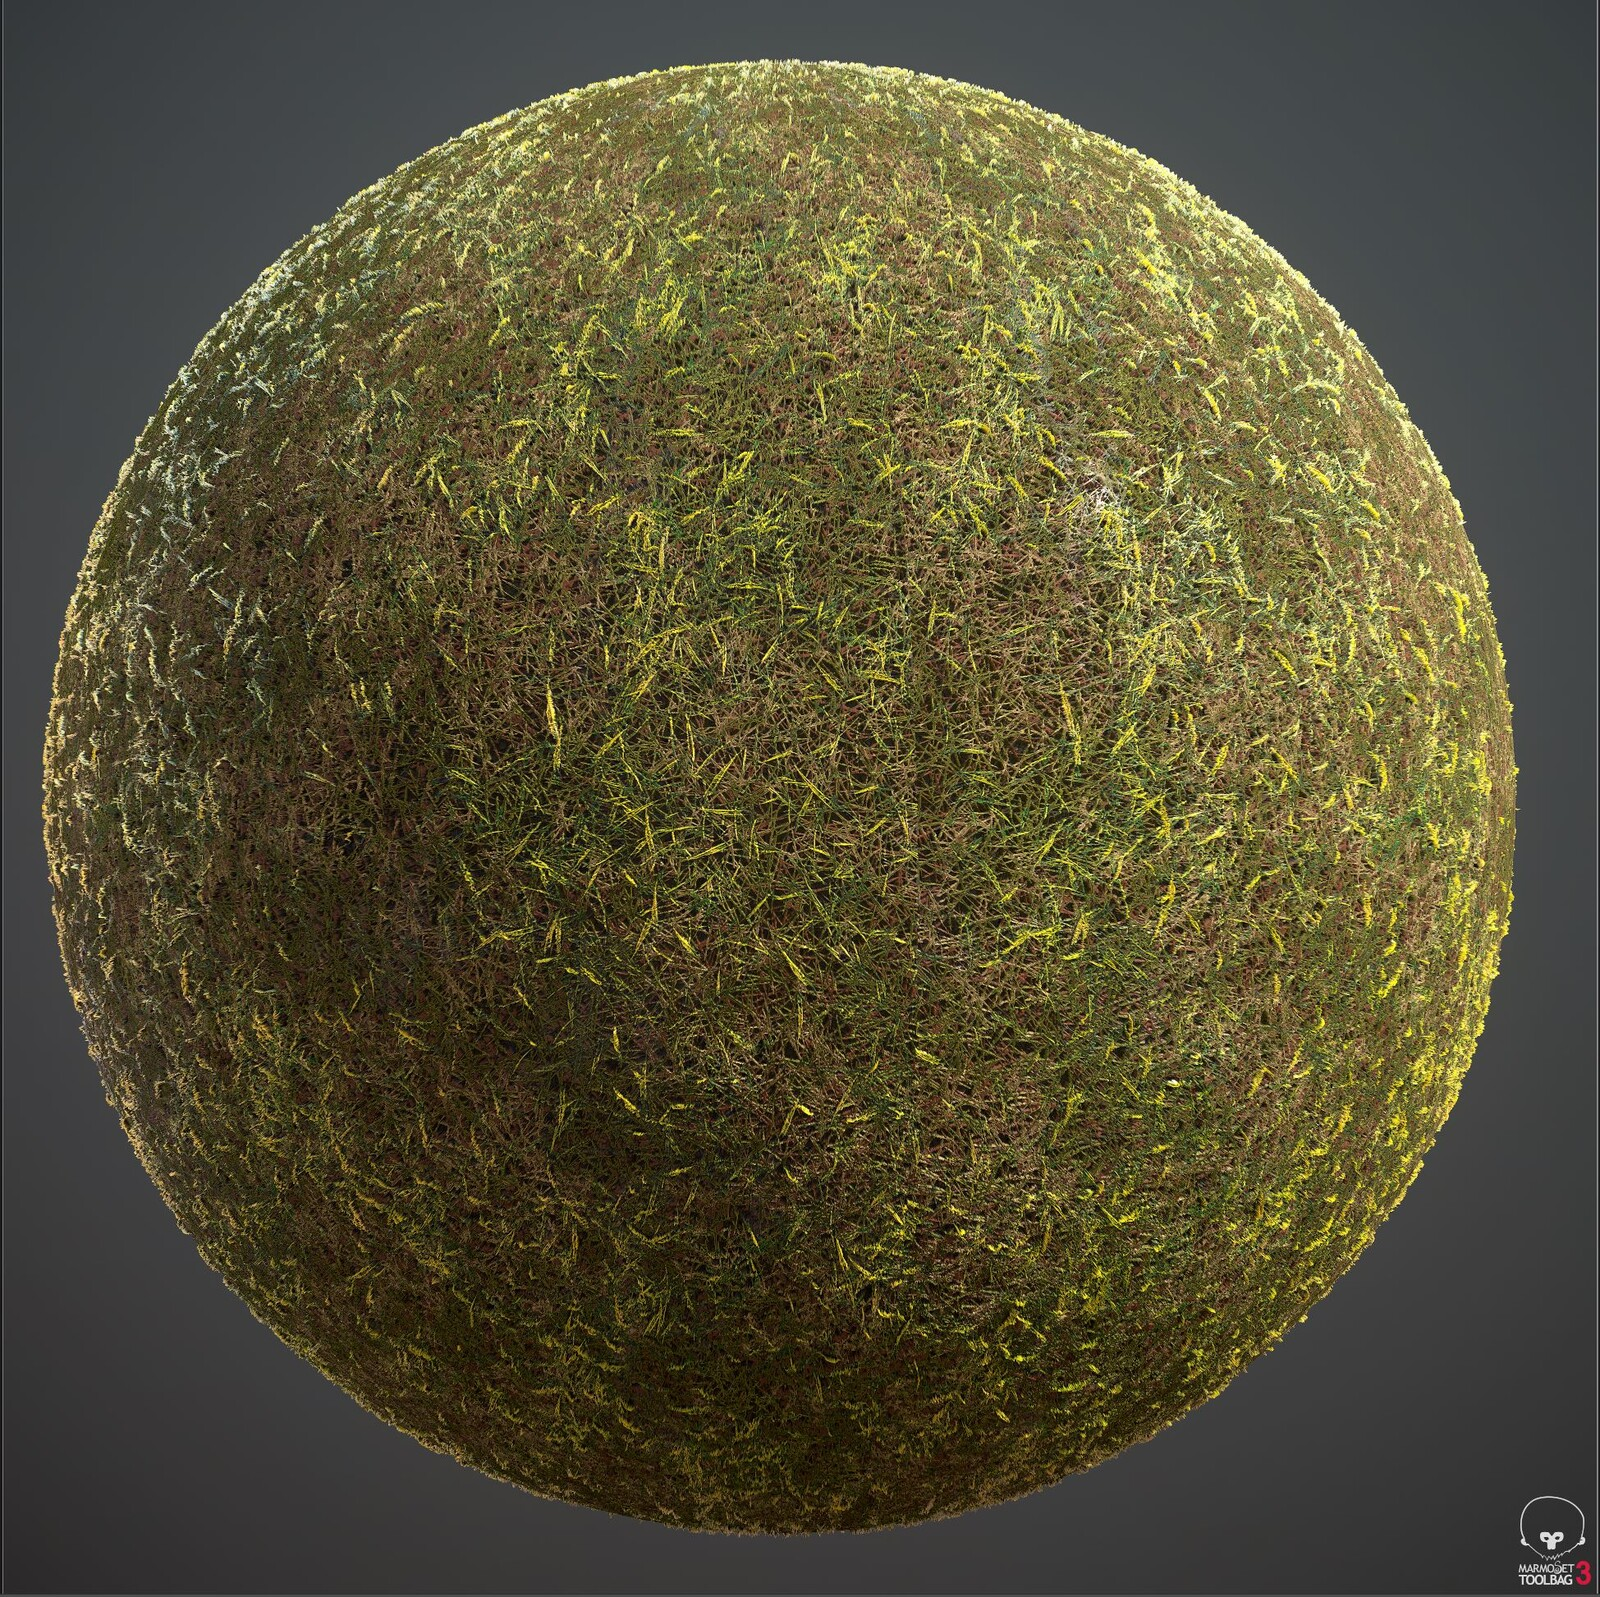 Grass Material (for cabin scene)